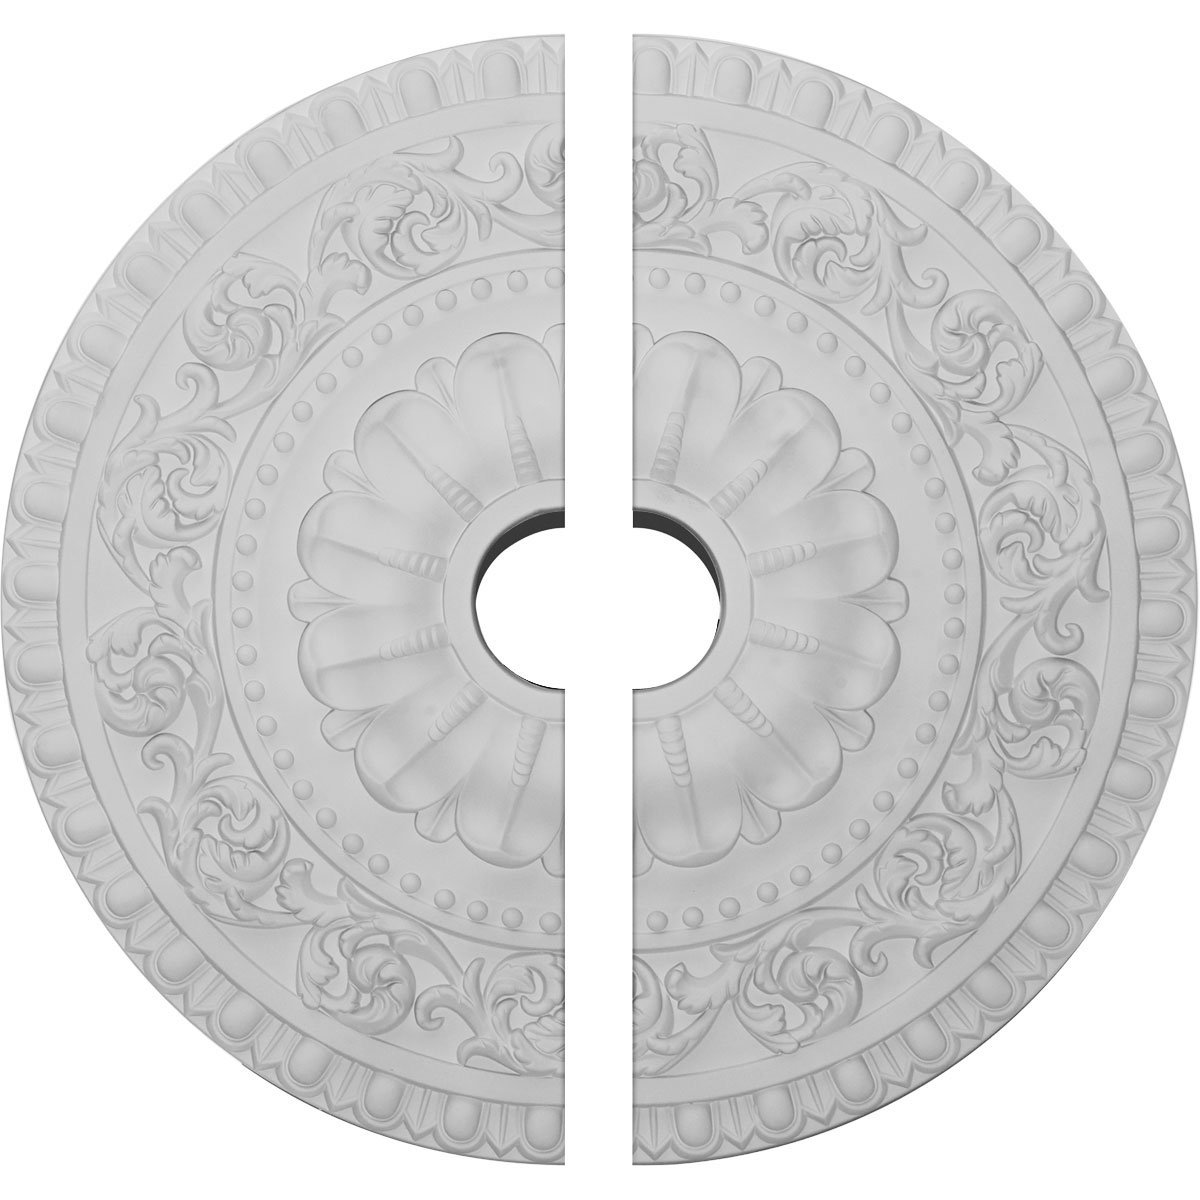 Ekena Millwork CM23VA2 23 OD ID x 2 1/8'' P Vaduz Ceiling Medallion, Two Piece (Fits Canopies up to 3 1/2''), Factory Primed White